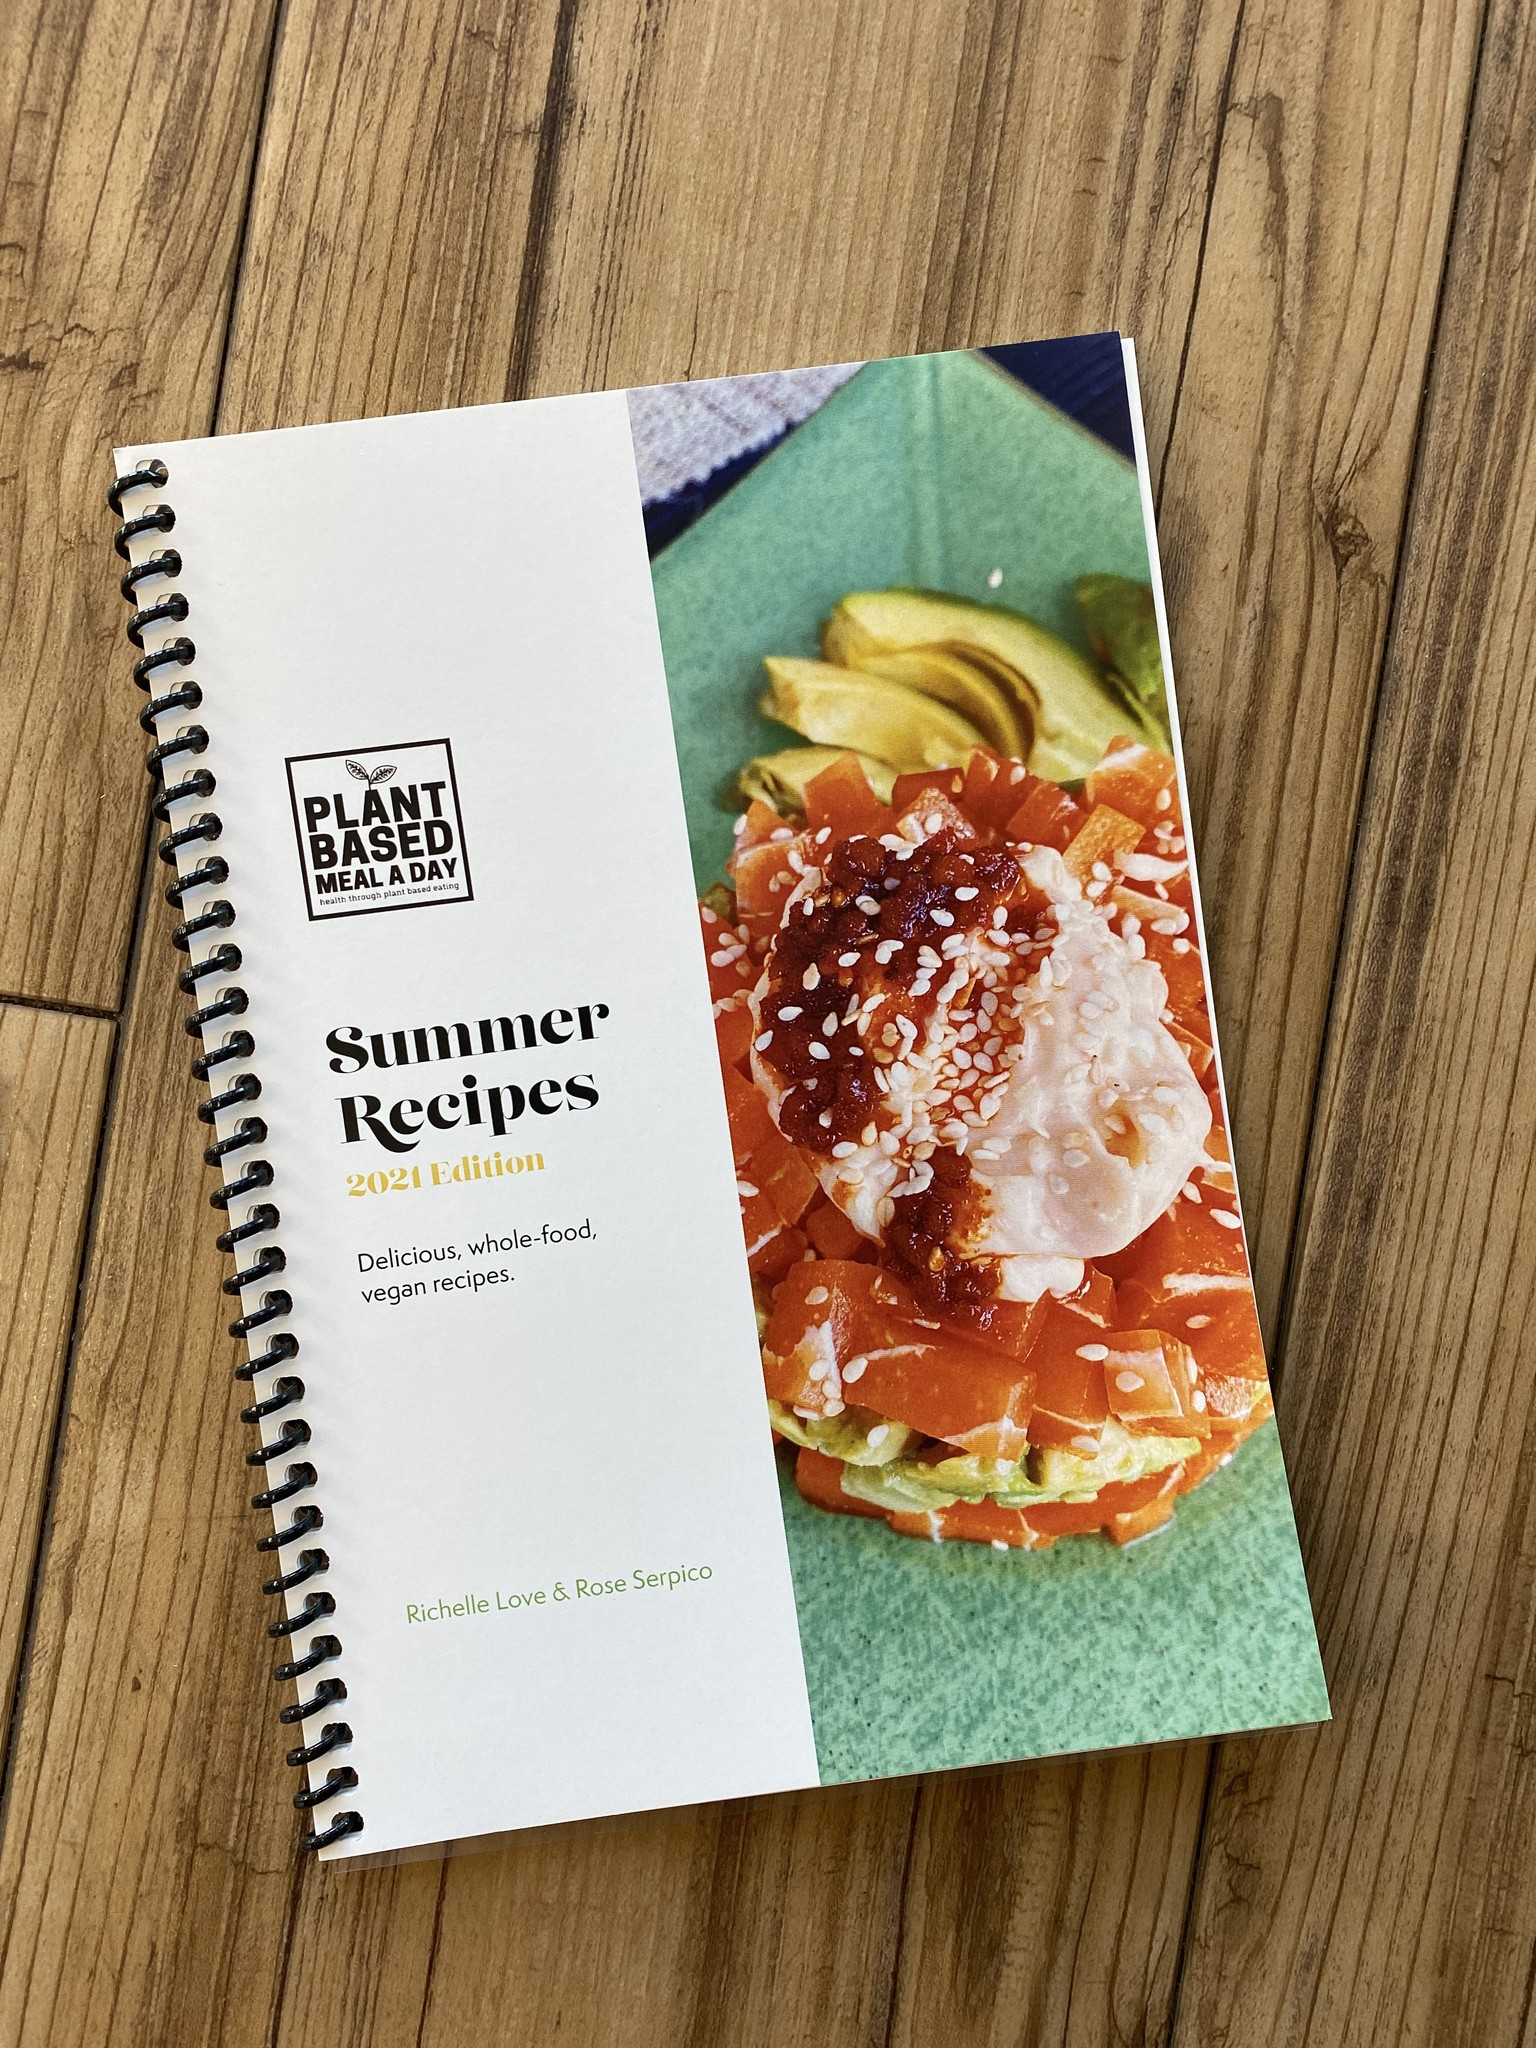 Plant Based Meal A Day PBMD Summer Recipes Cookbook